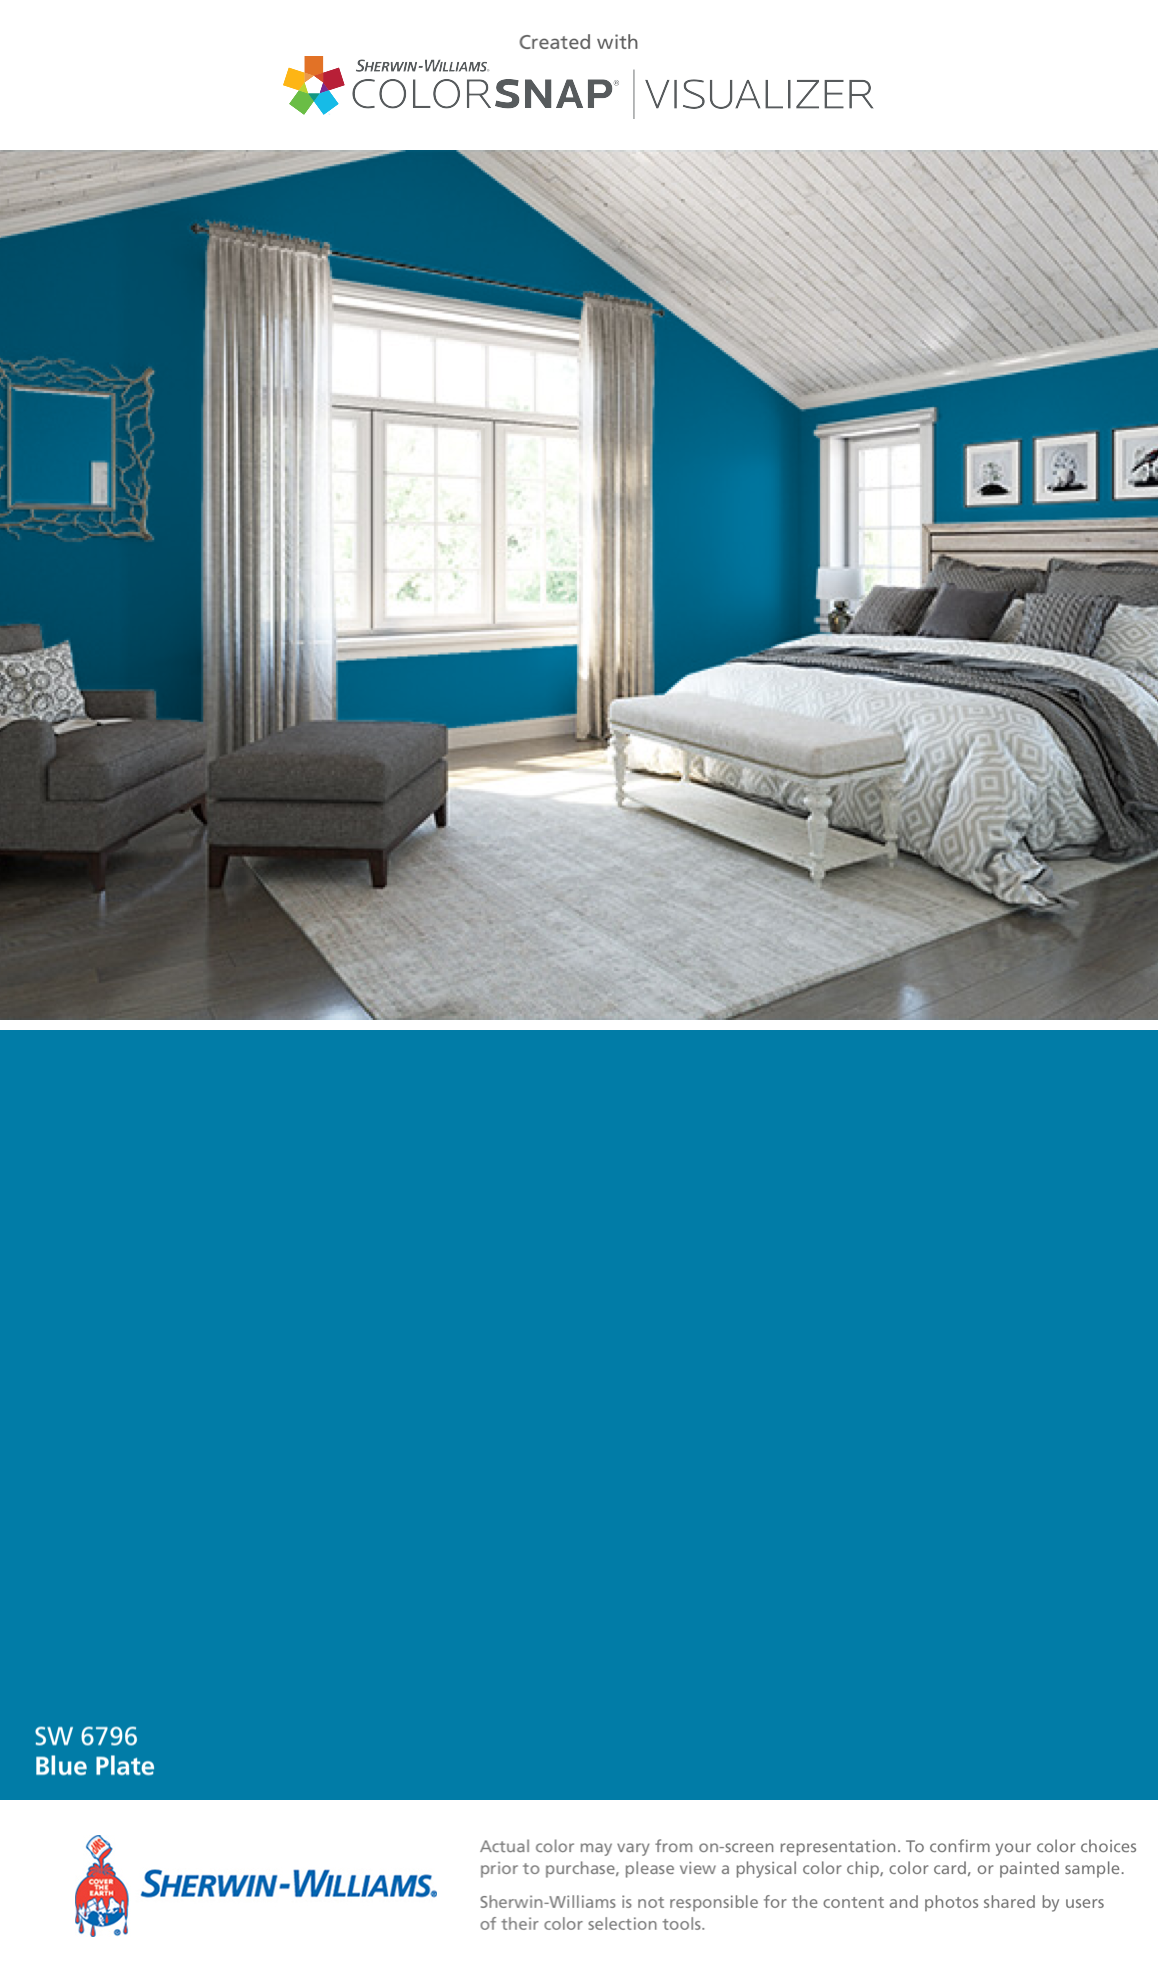 Sherwin williams paint colors sherwin williams 6249 storm cloud - I Found This Color With Colorsnap Visualizer For Iphone By Sherwin Williams Blue